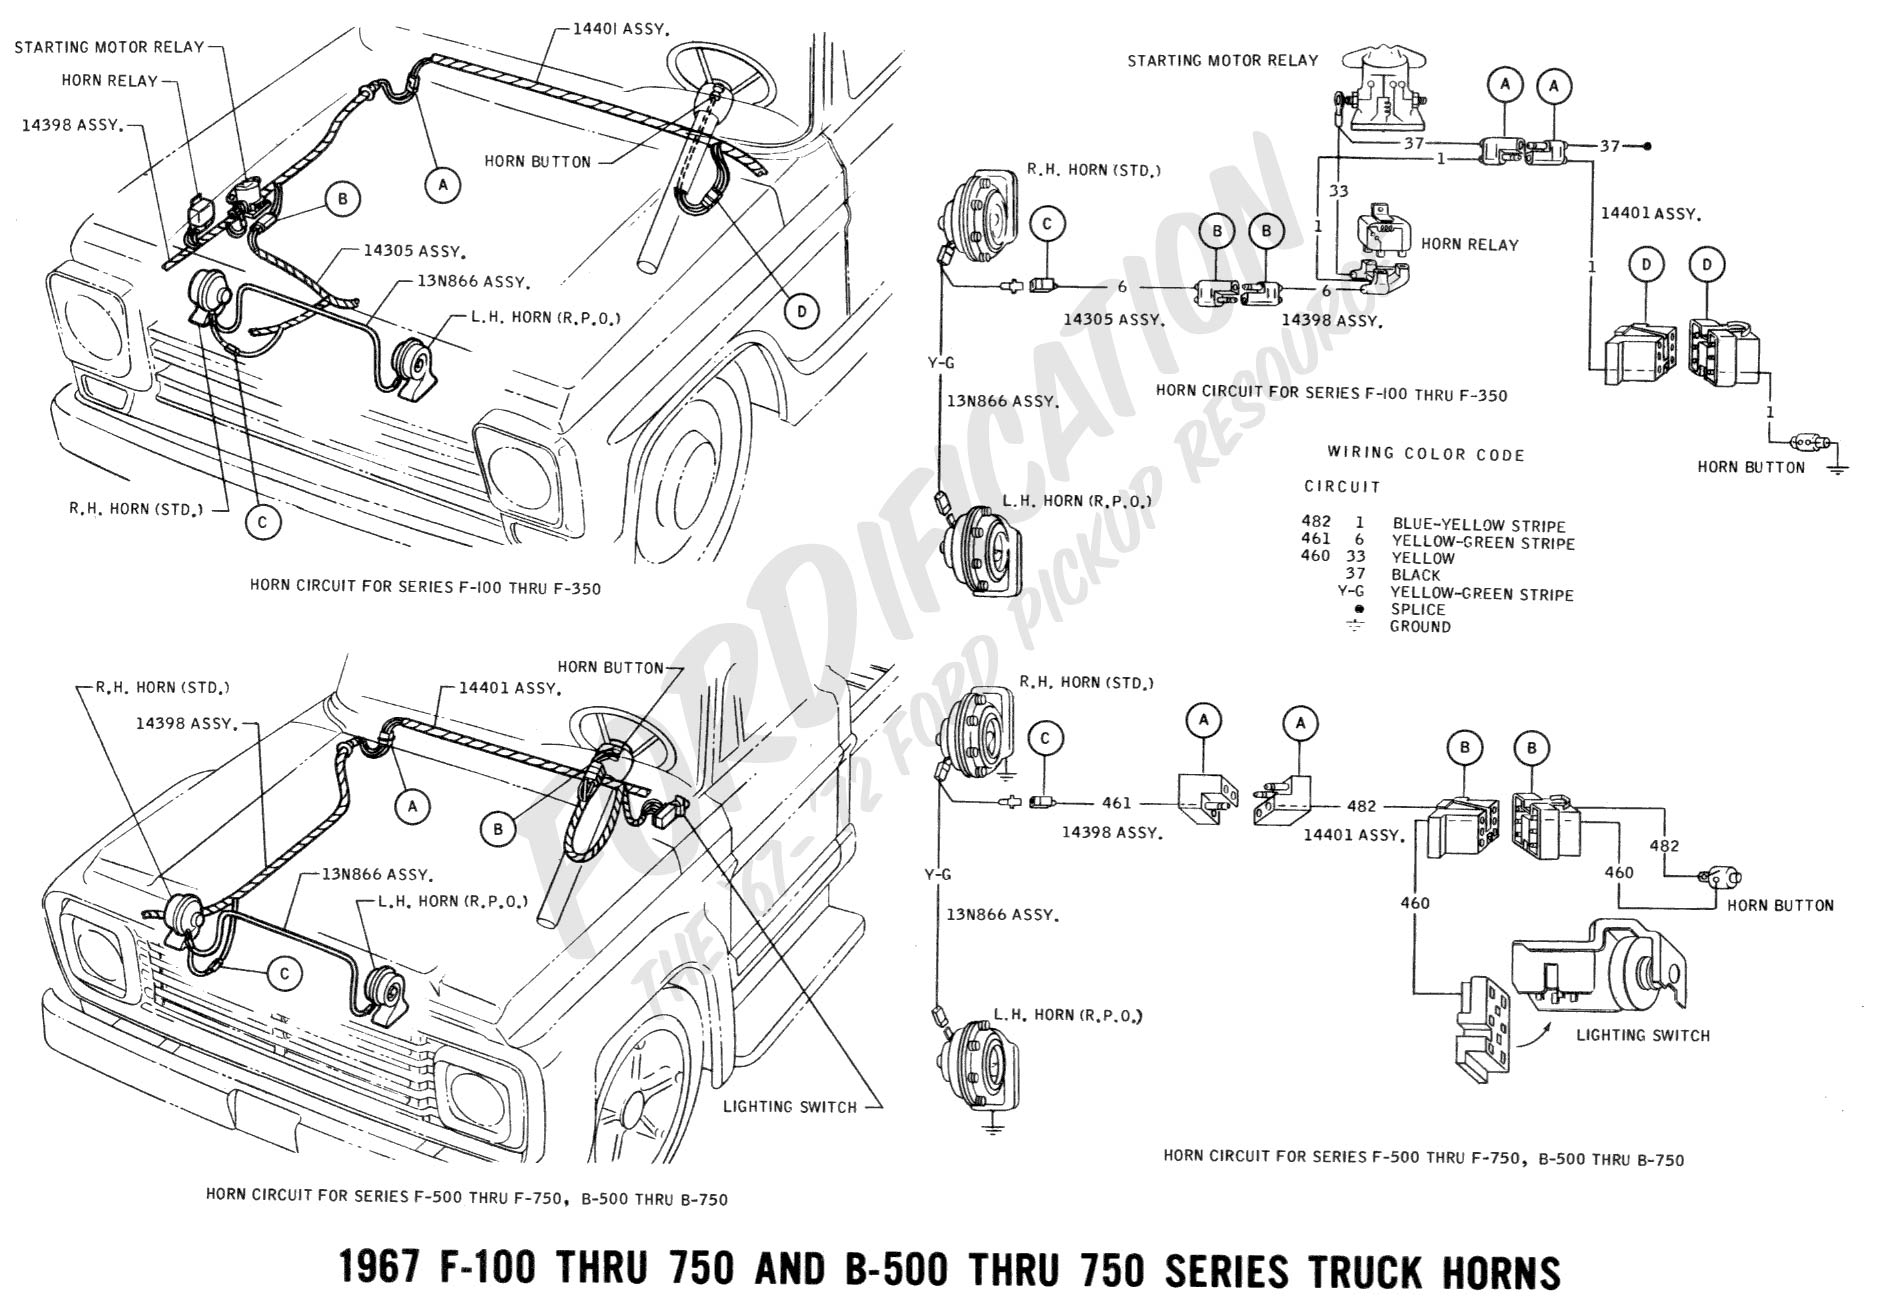 Nissan Master Cylinder Diagram as well Diesel Starter Wiring Diagram likewise Schematics h also Honda Accord88 Radiator Diagram And Schematics together with 1965 Pontiac Gto Wiring Diagrams. on 1967 ford mustang fuse box diagram